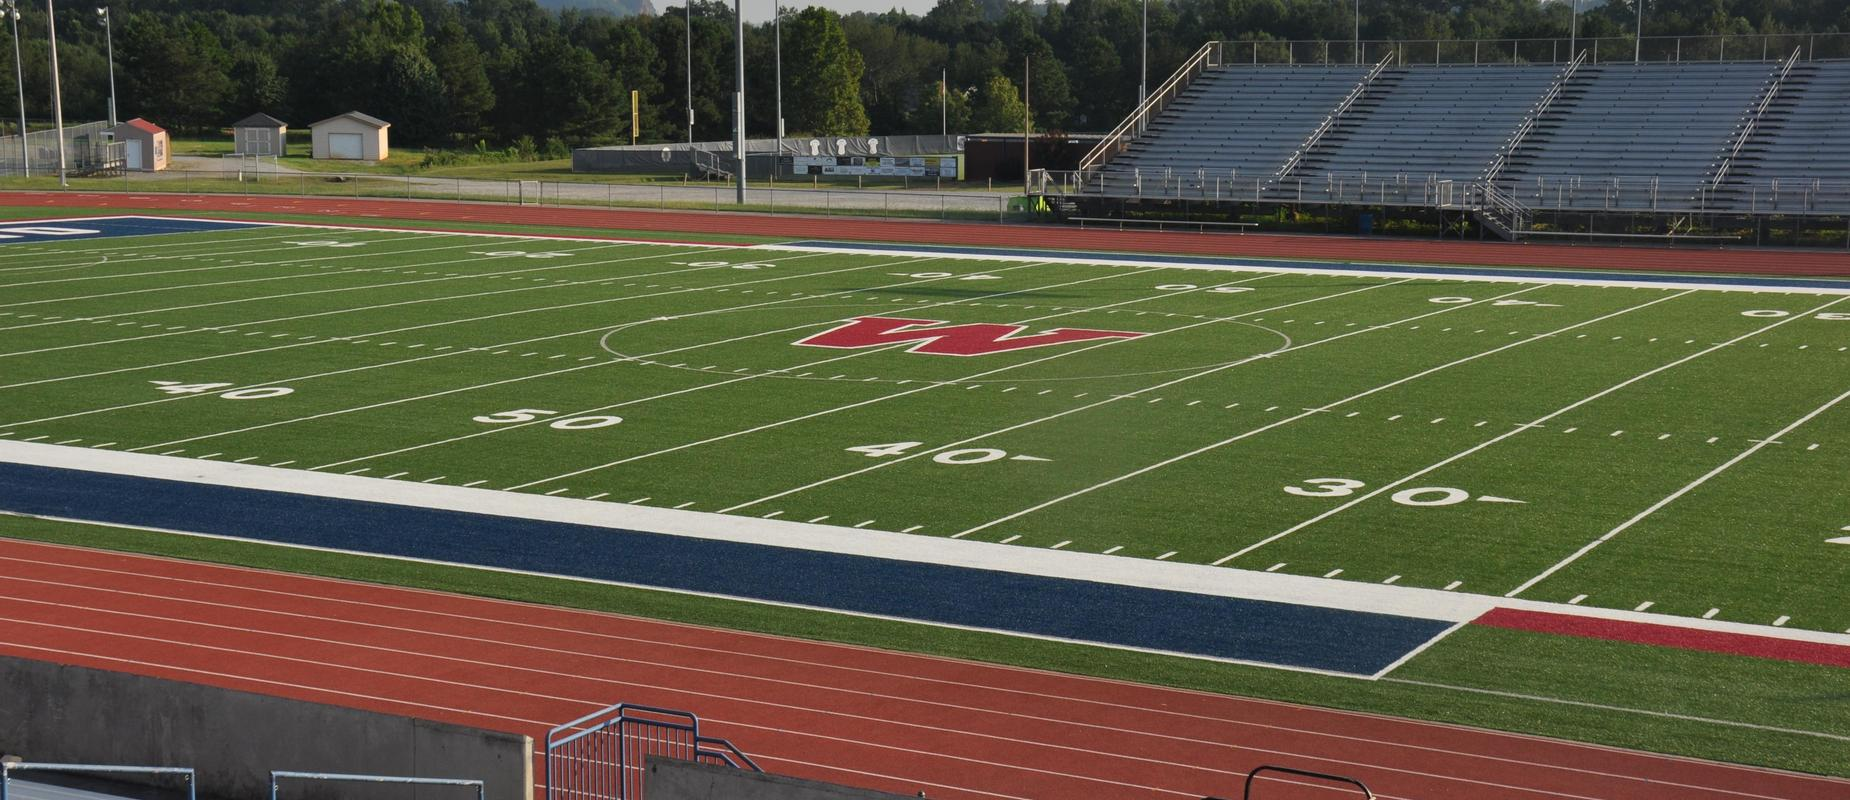 New turf at Woodland High School